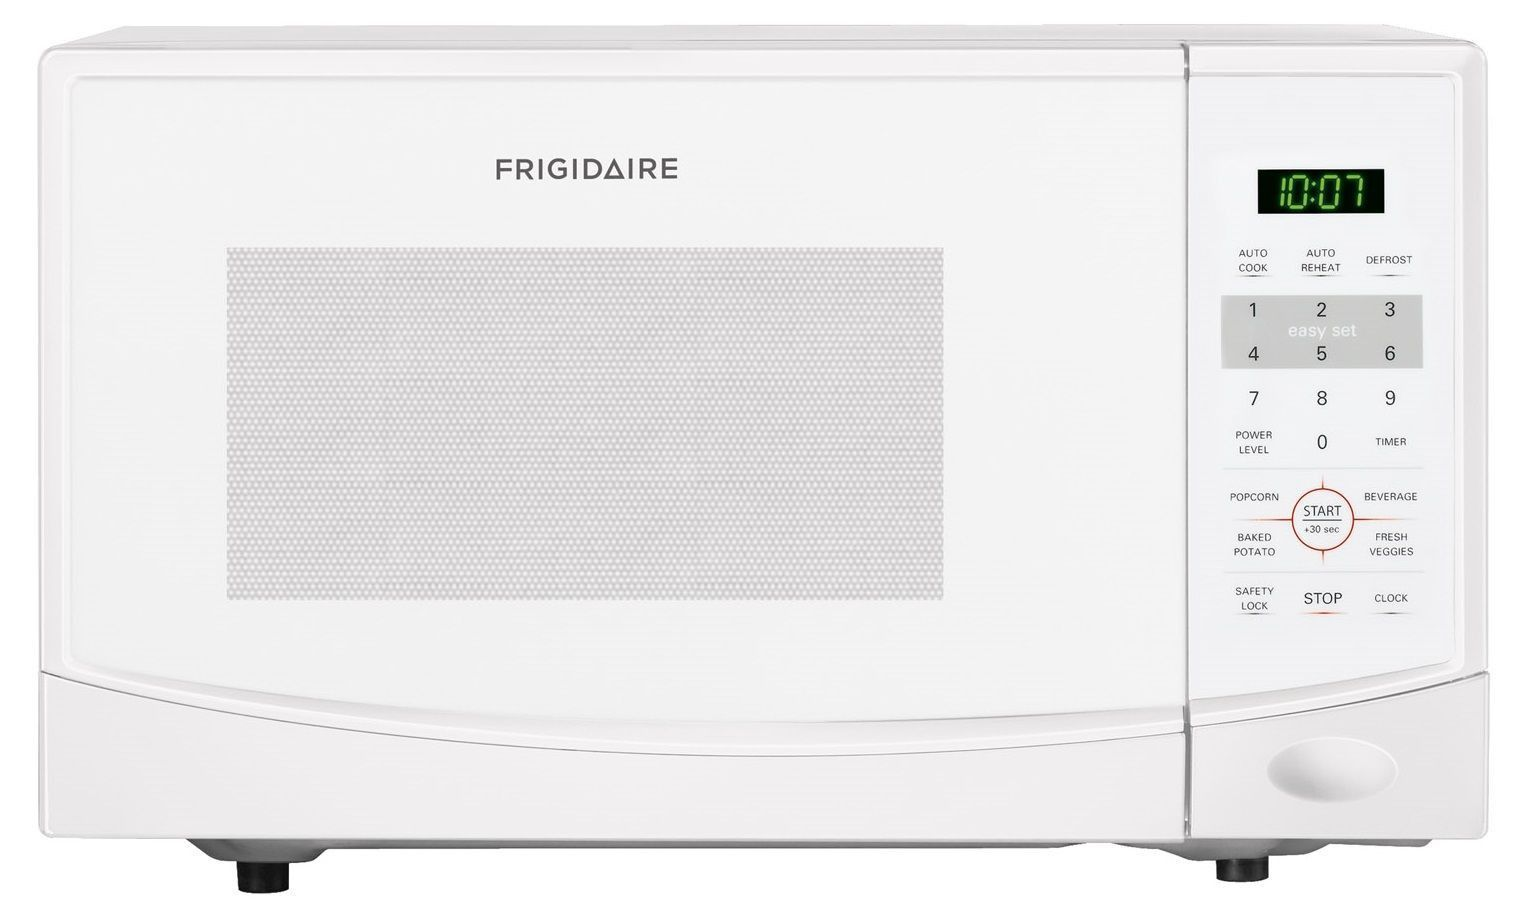 Frigidaire Ffcm0934lw 900 Watts Microwave Oven Products